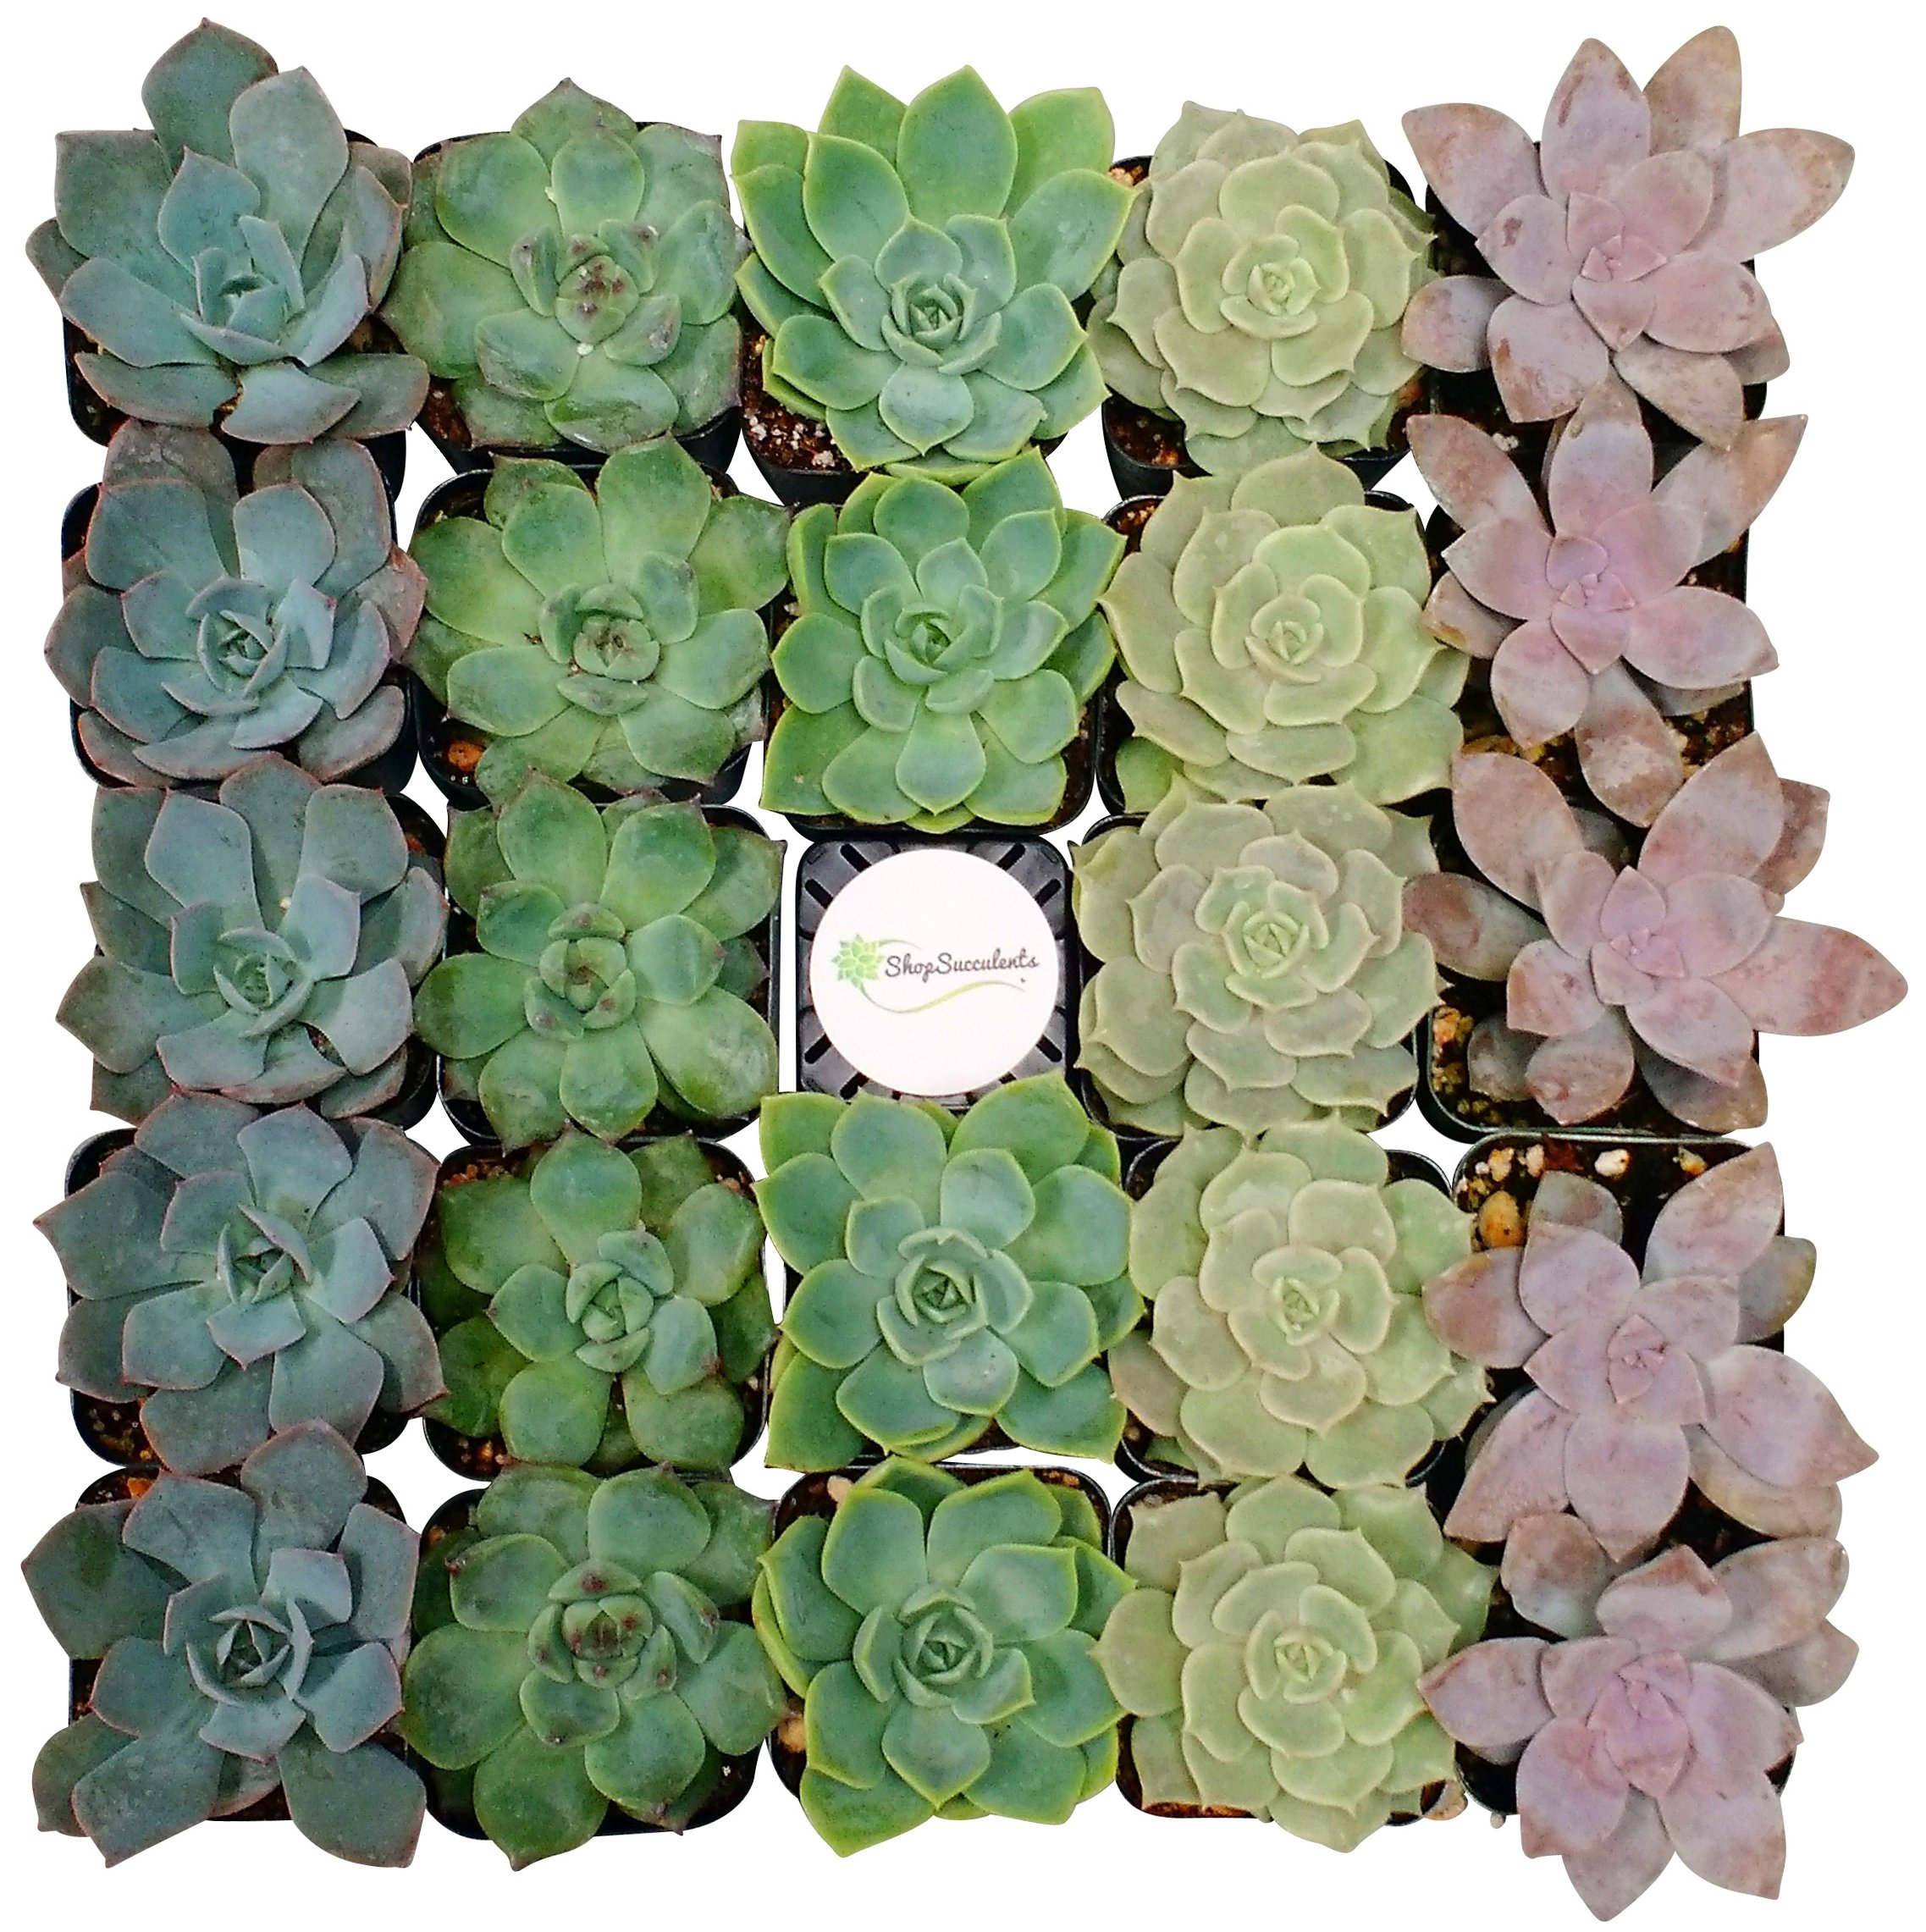 Shop Succulents Rosette Succulent (Collection of 100) by Shop Succulents